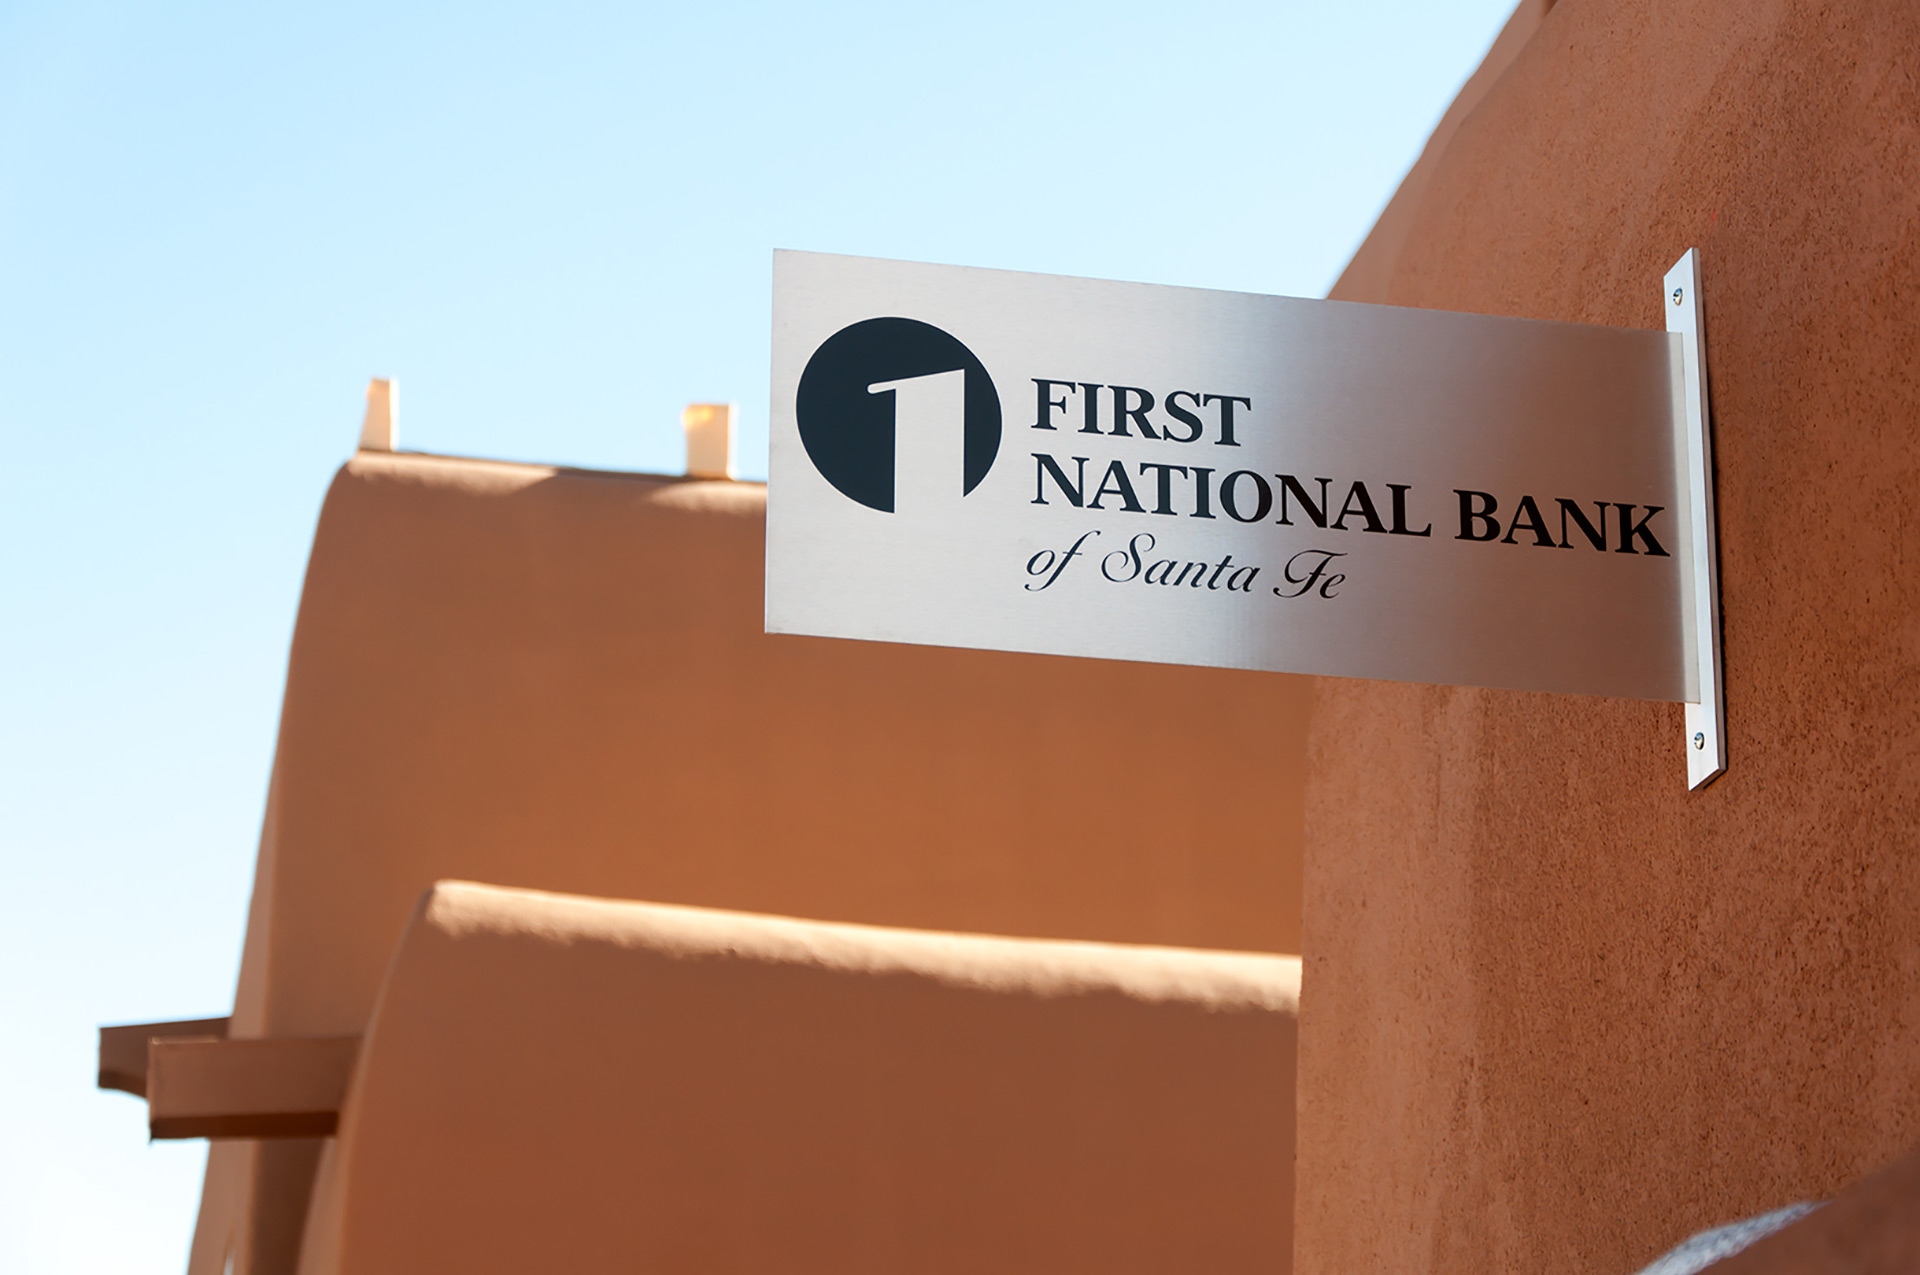 First National Bank Santa Fe